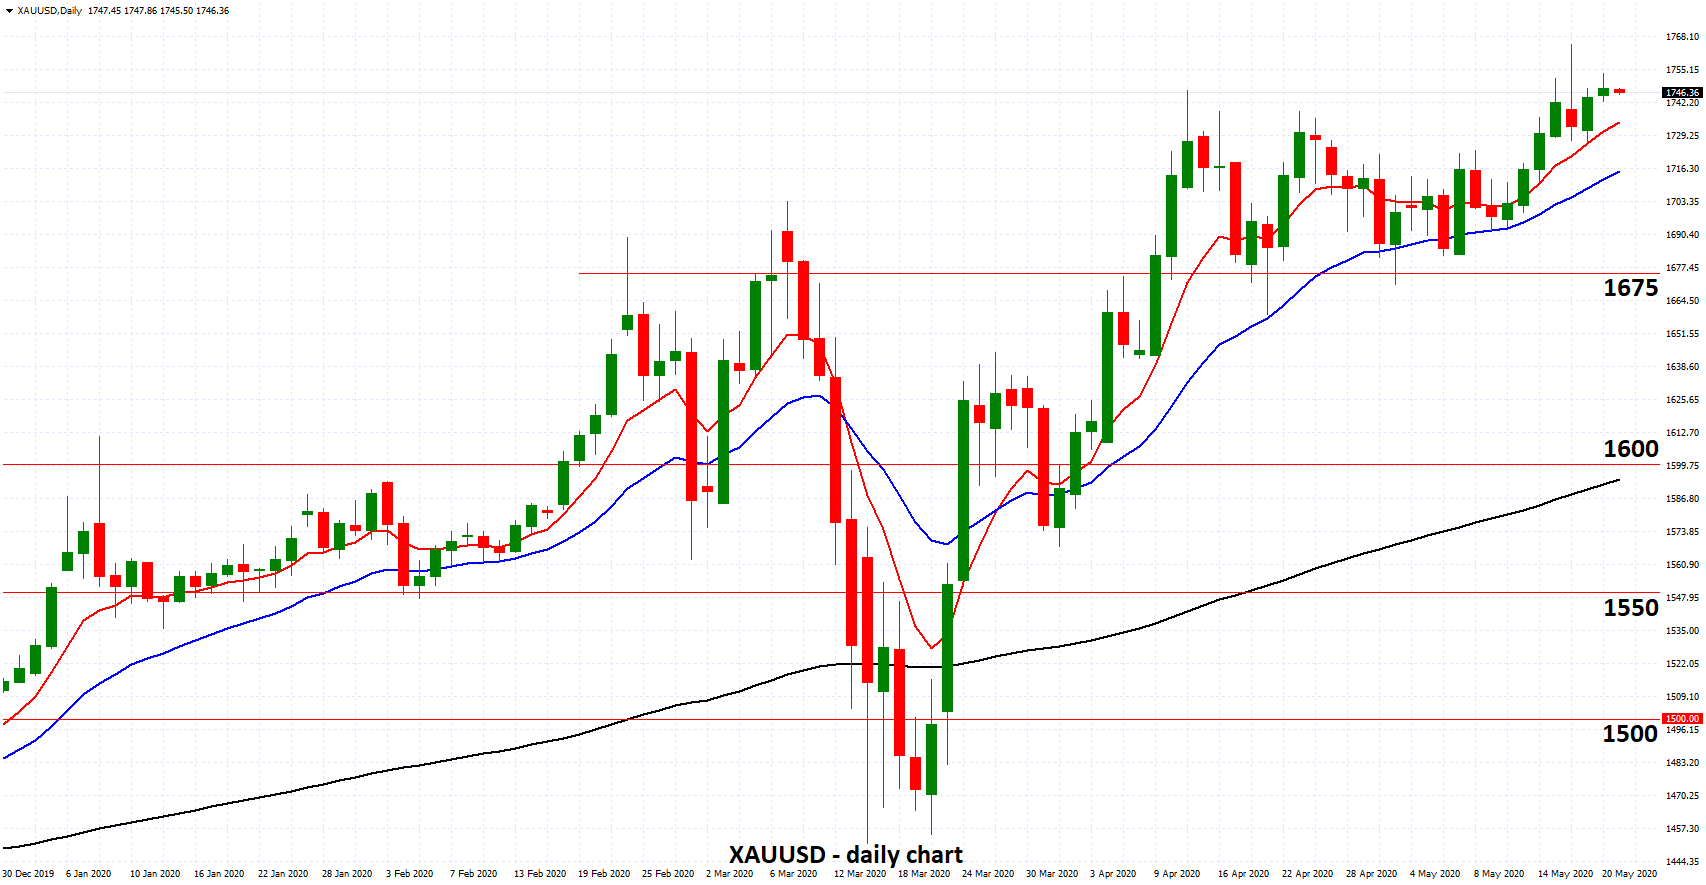 XAUUSD - At Eight Year High around 1750 on Talk of Negative Rates